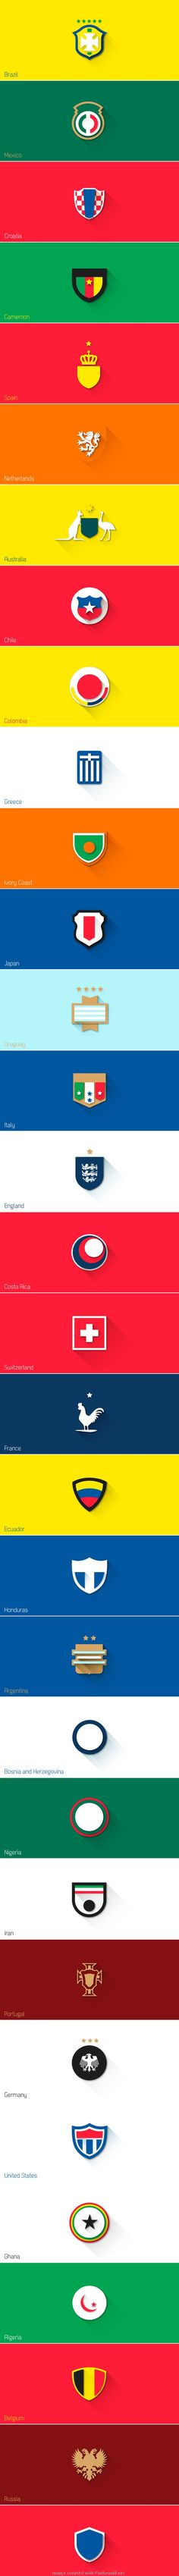 Fifa World Cup Brazil 2014 | Flat Design Shields